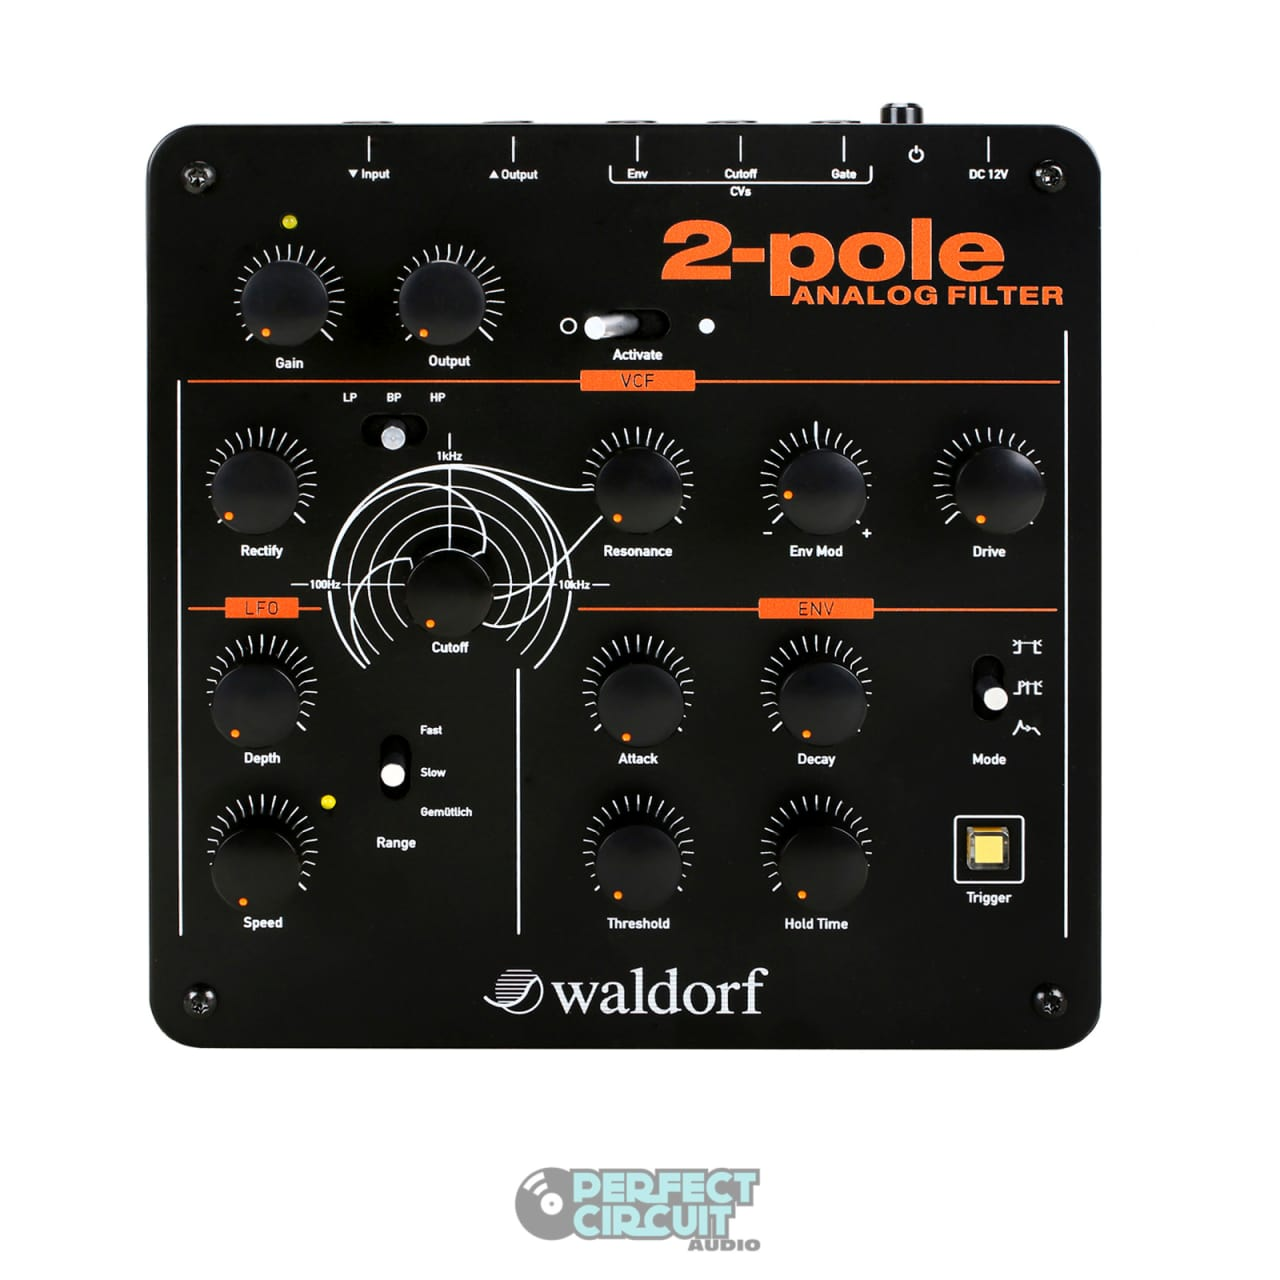 waldorf 2-pole analog filter effects - new